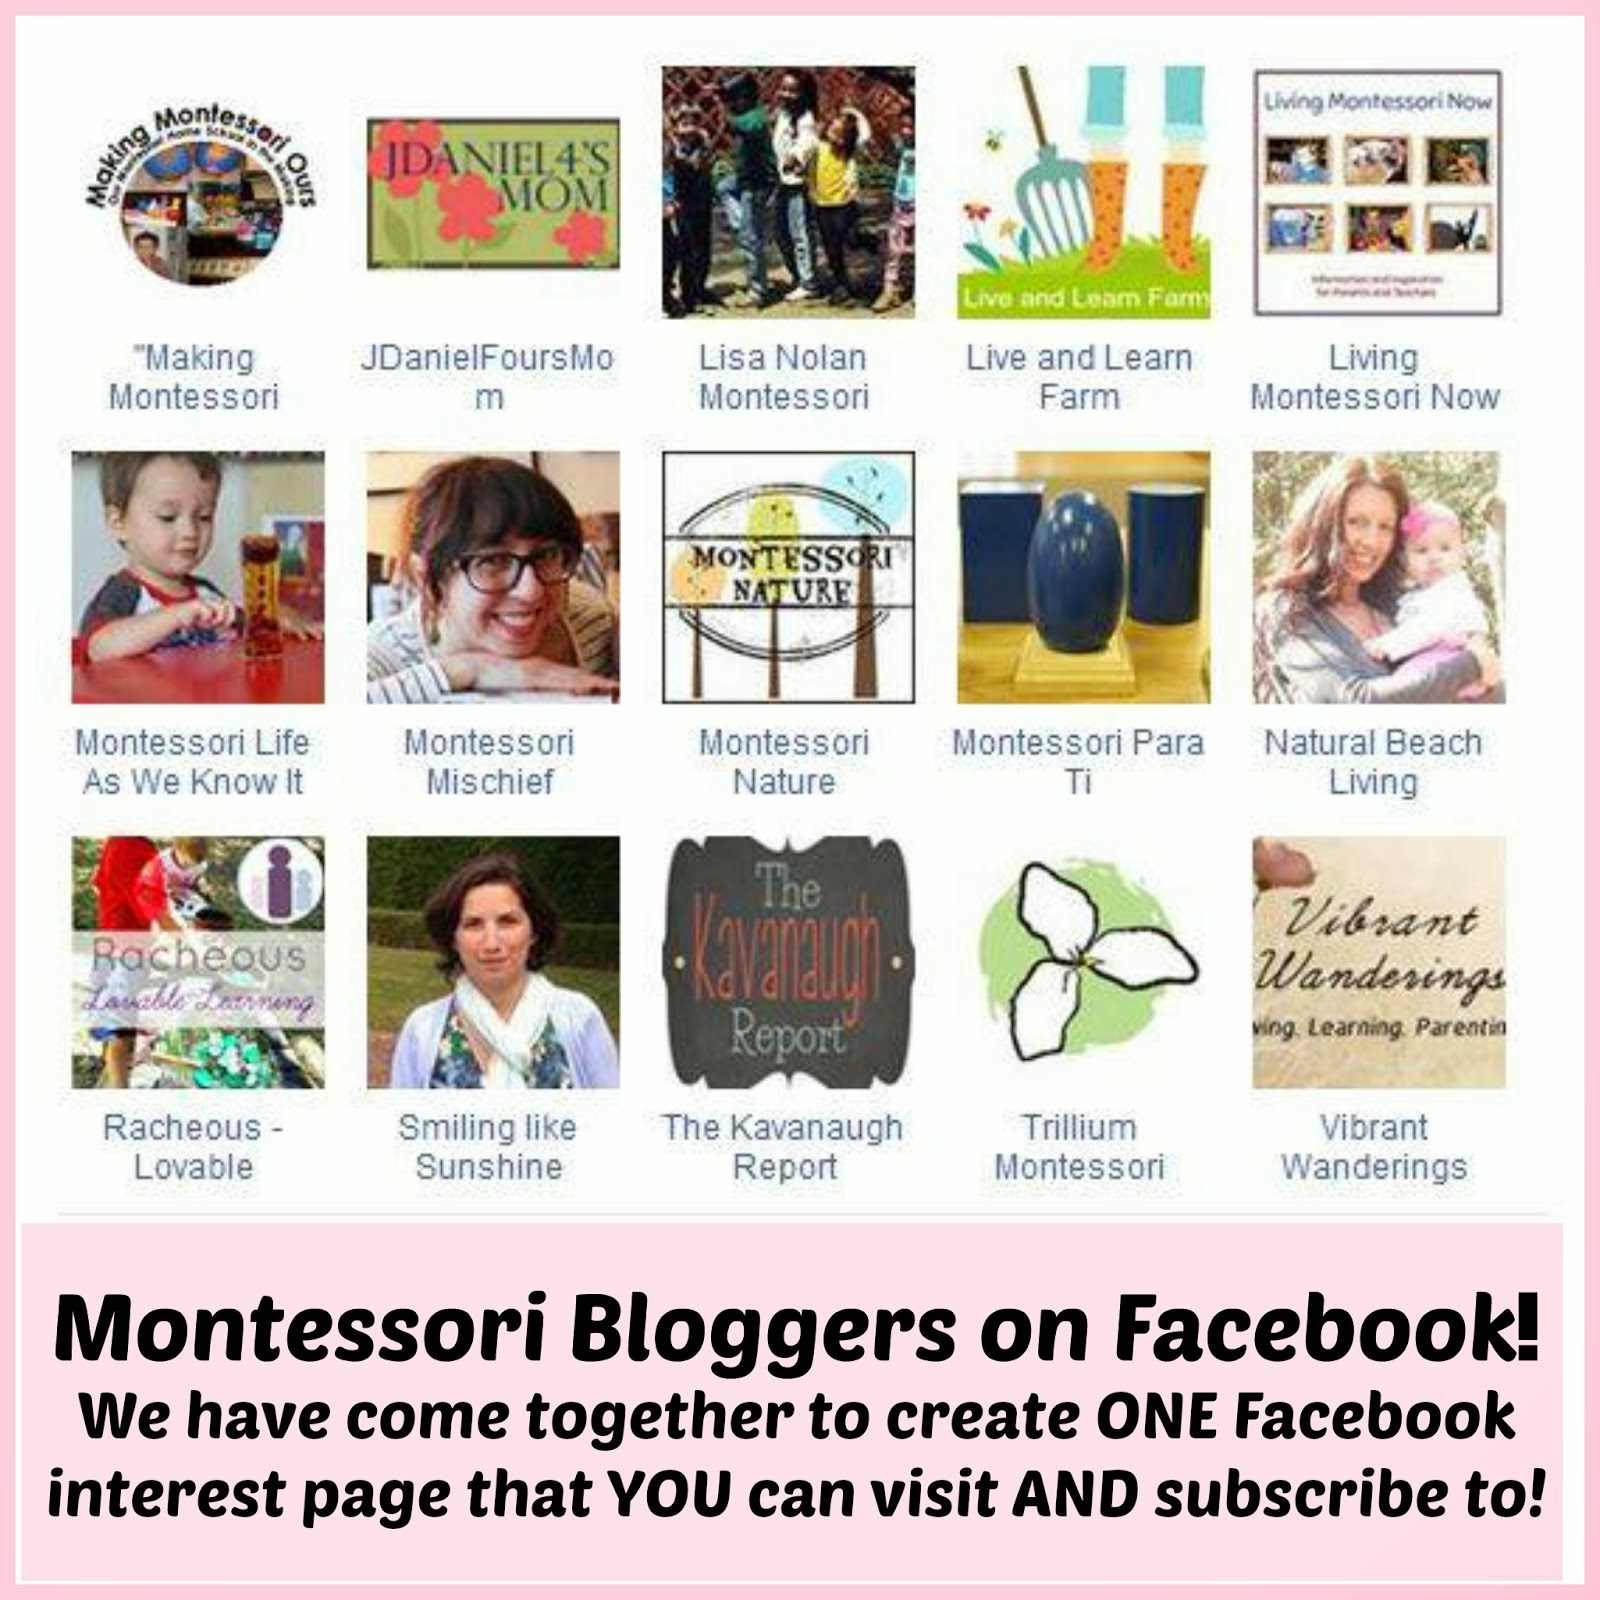 MONTESSORI BLOGGERS ON FACEBOOK